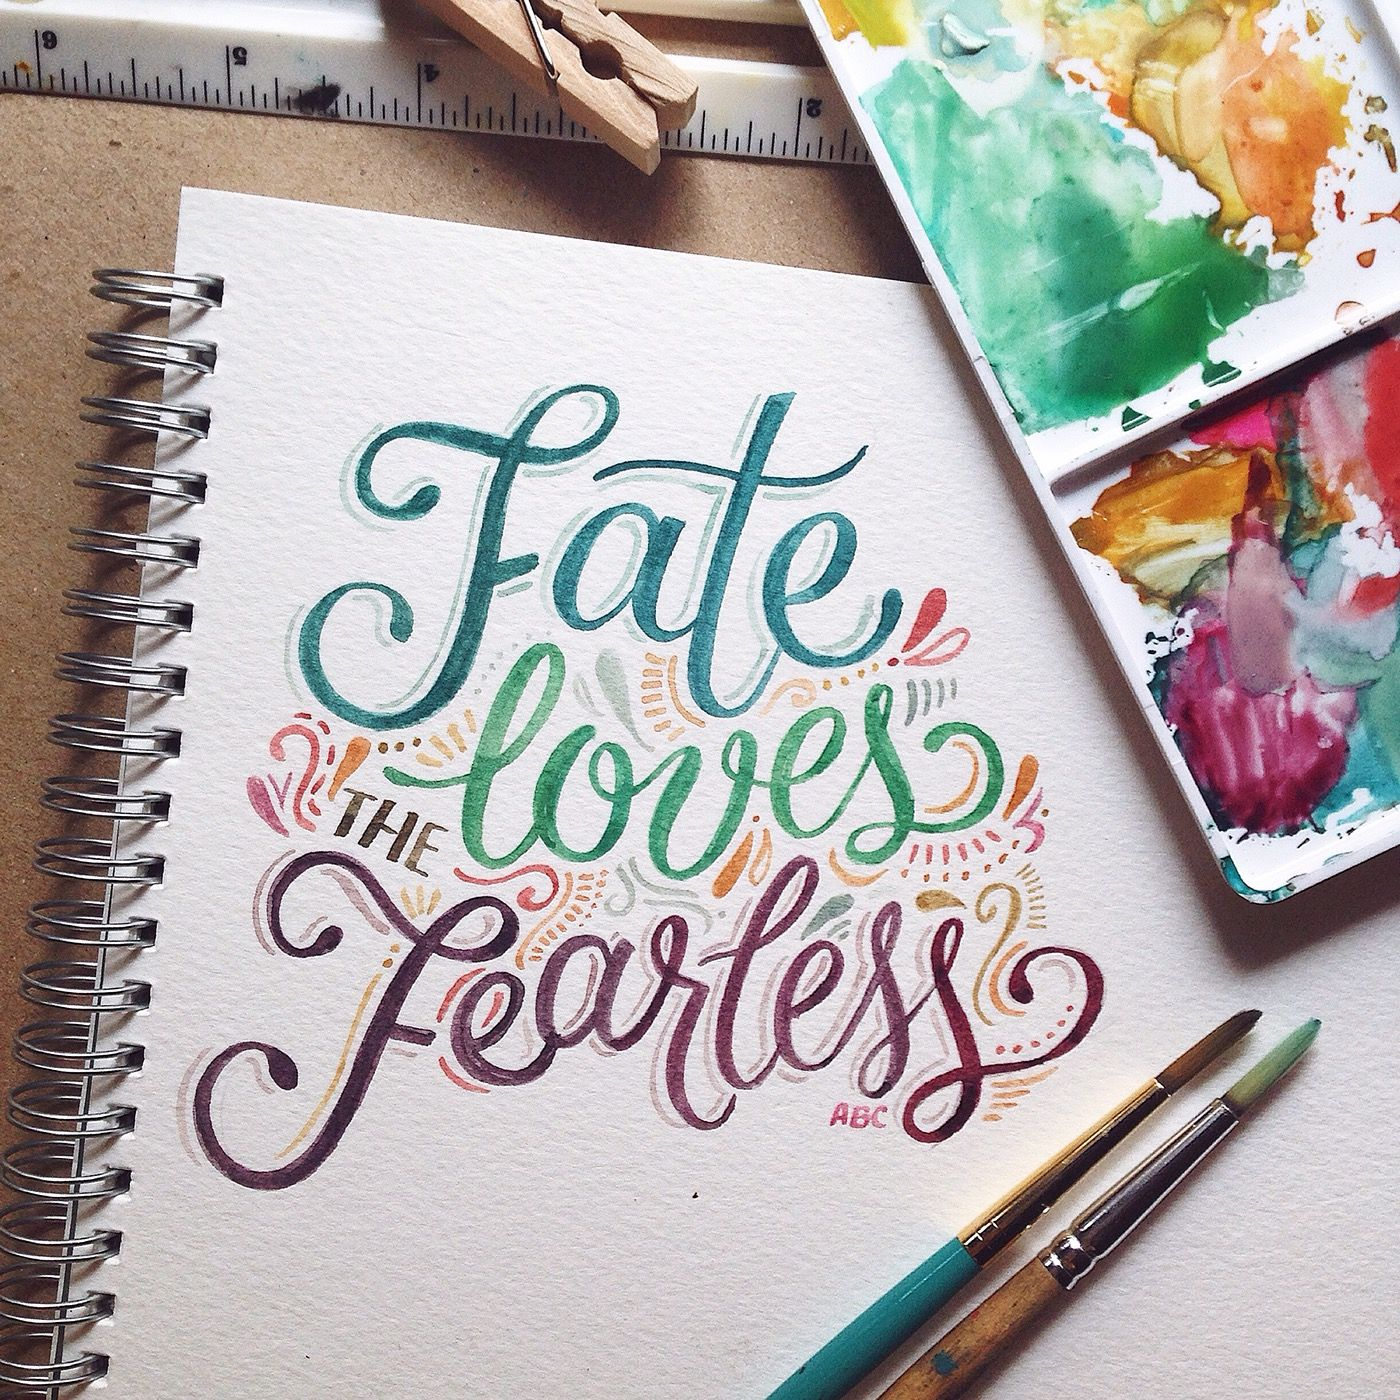 A compilation of watercolor lettering work from july to